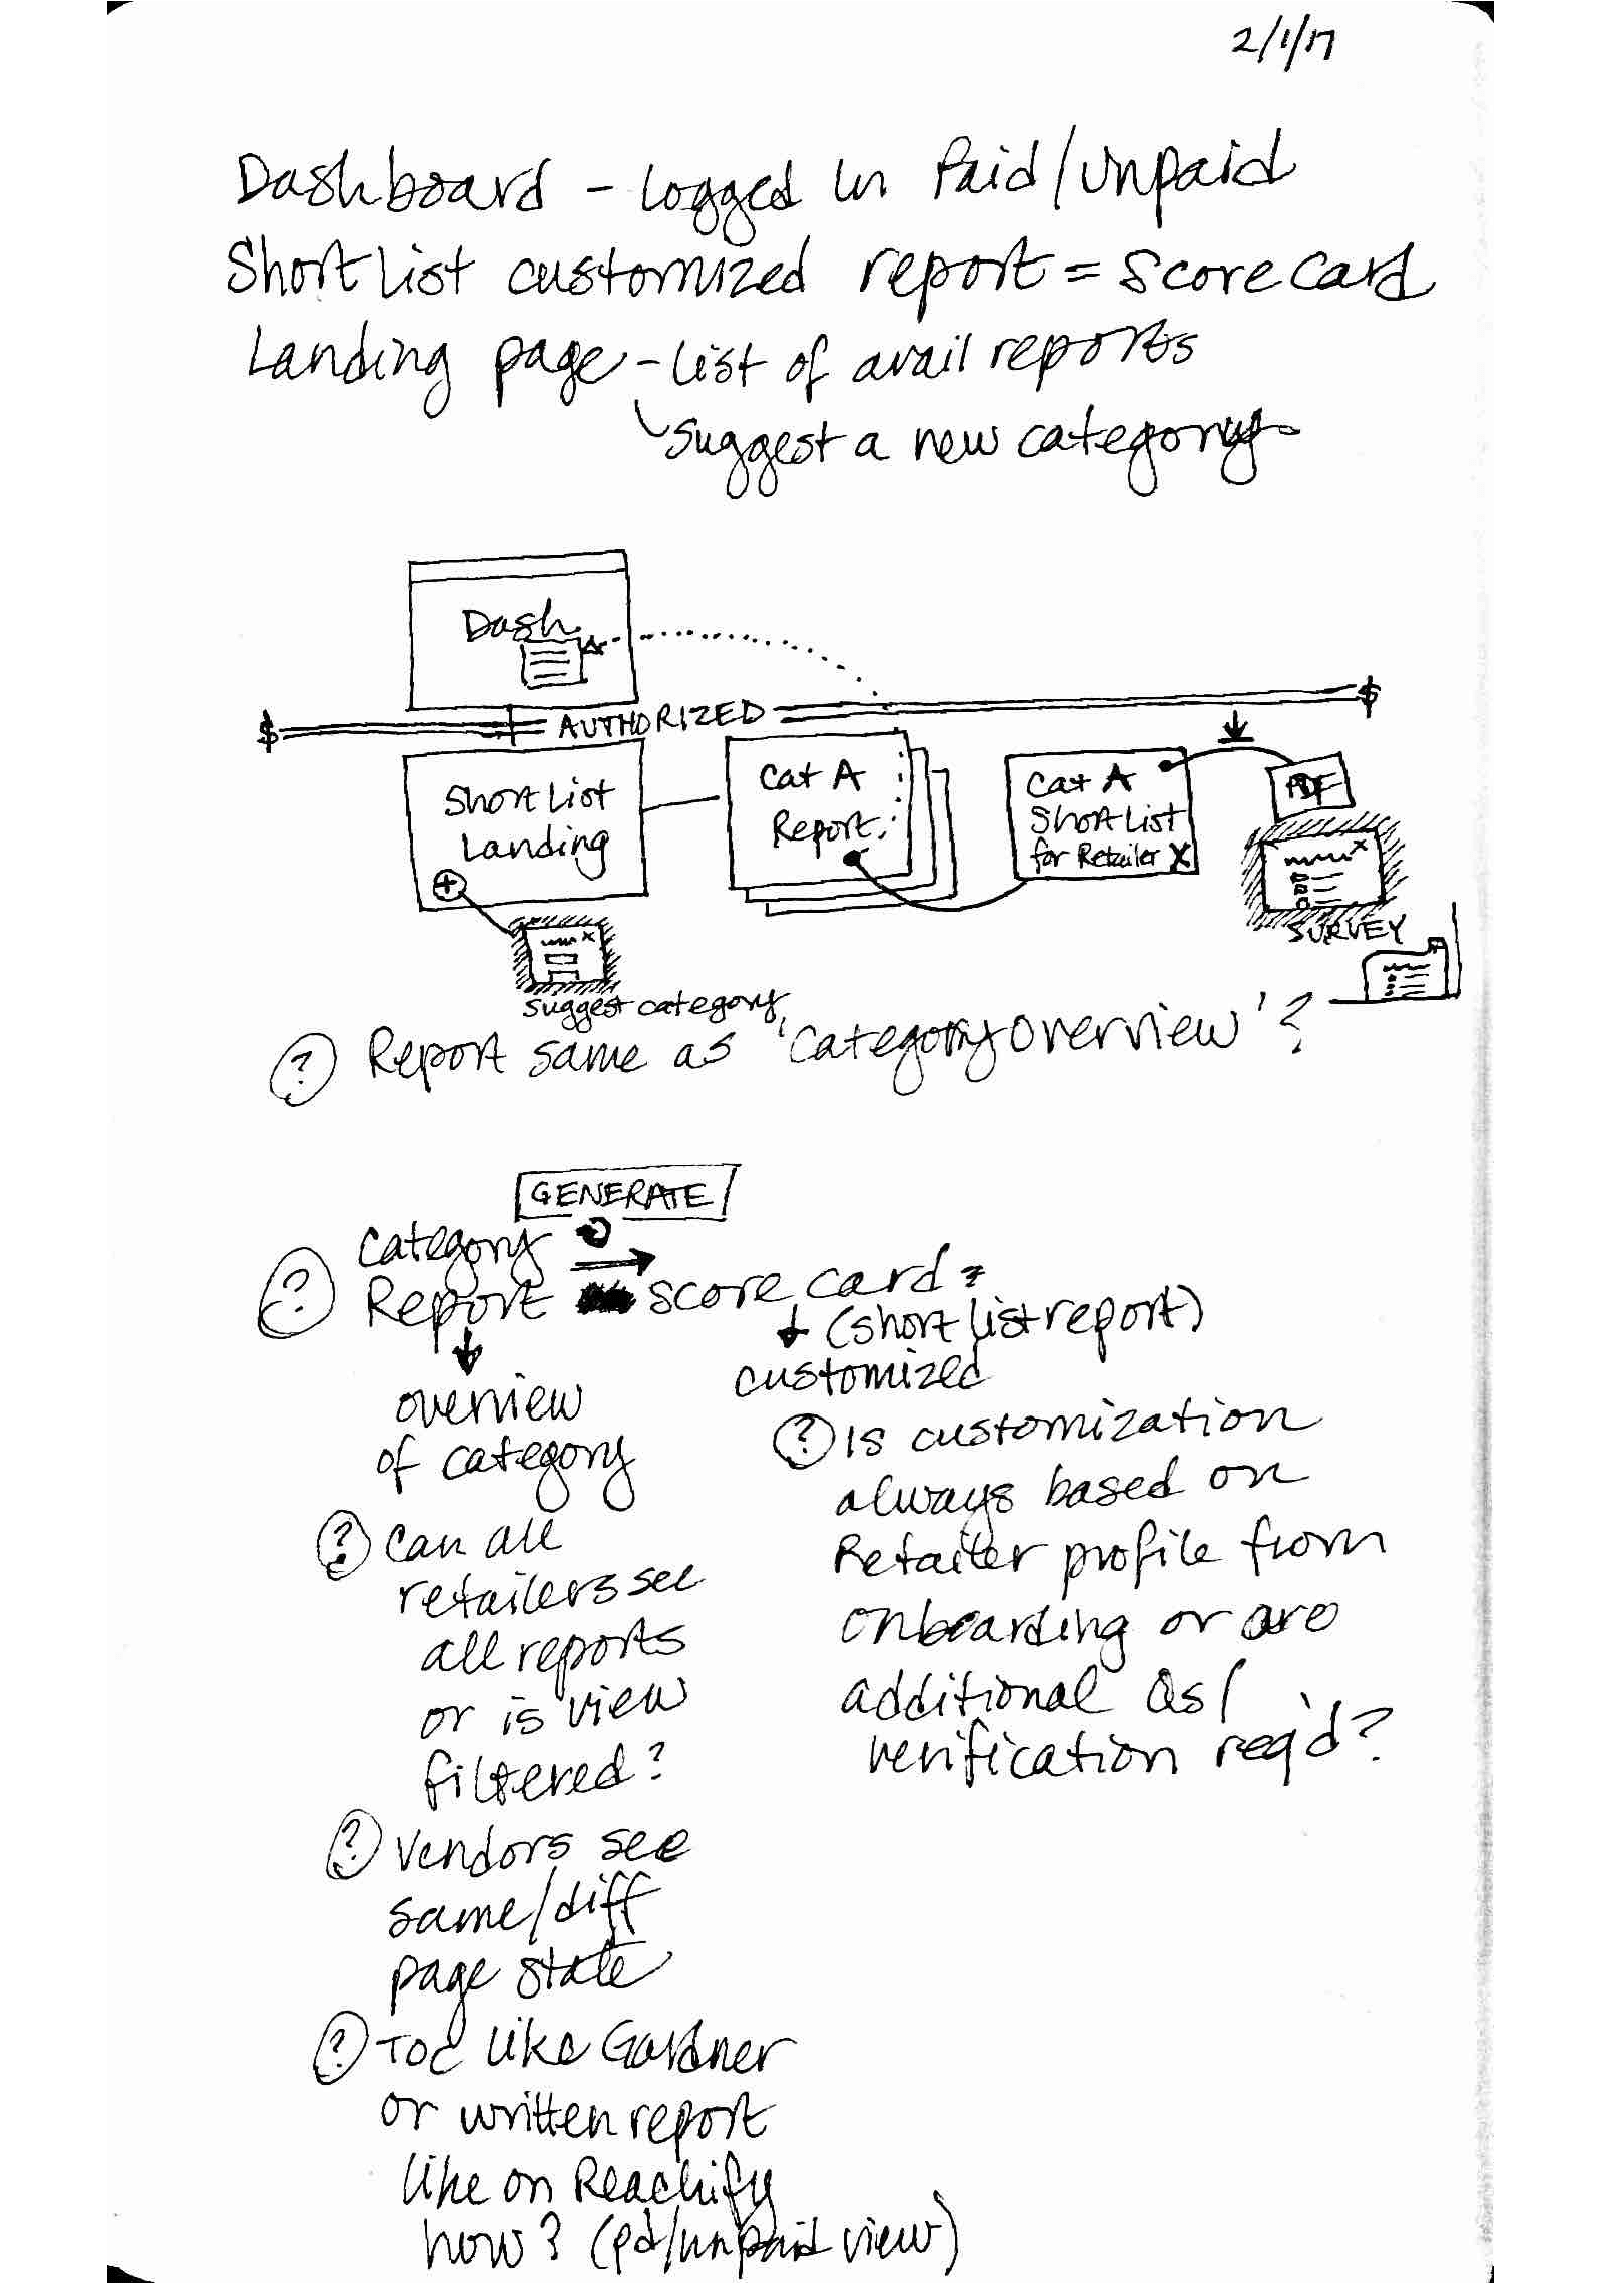 A sketch showing how users would move through the ShortList process